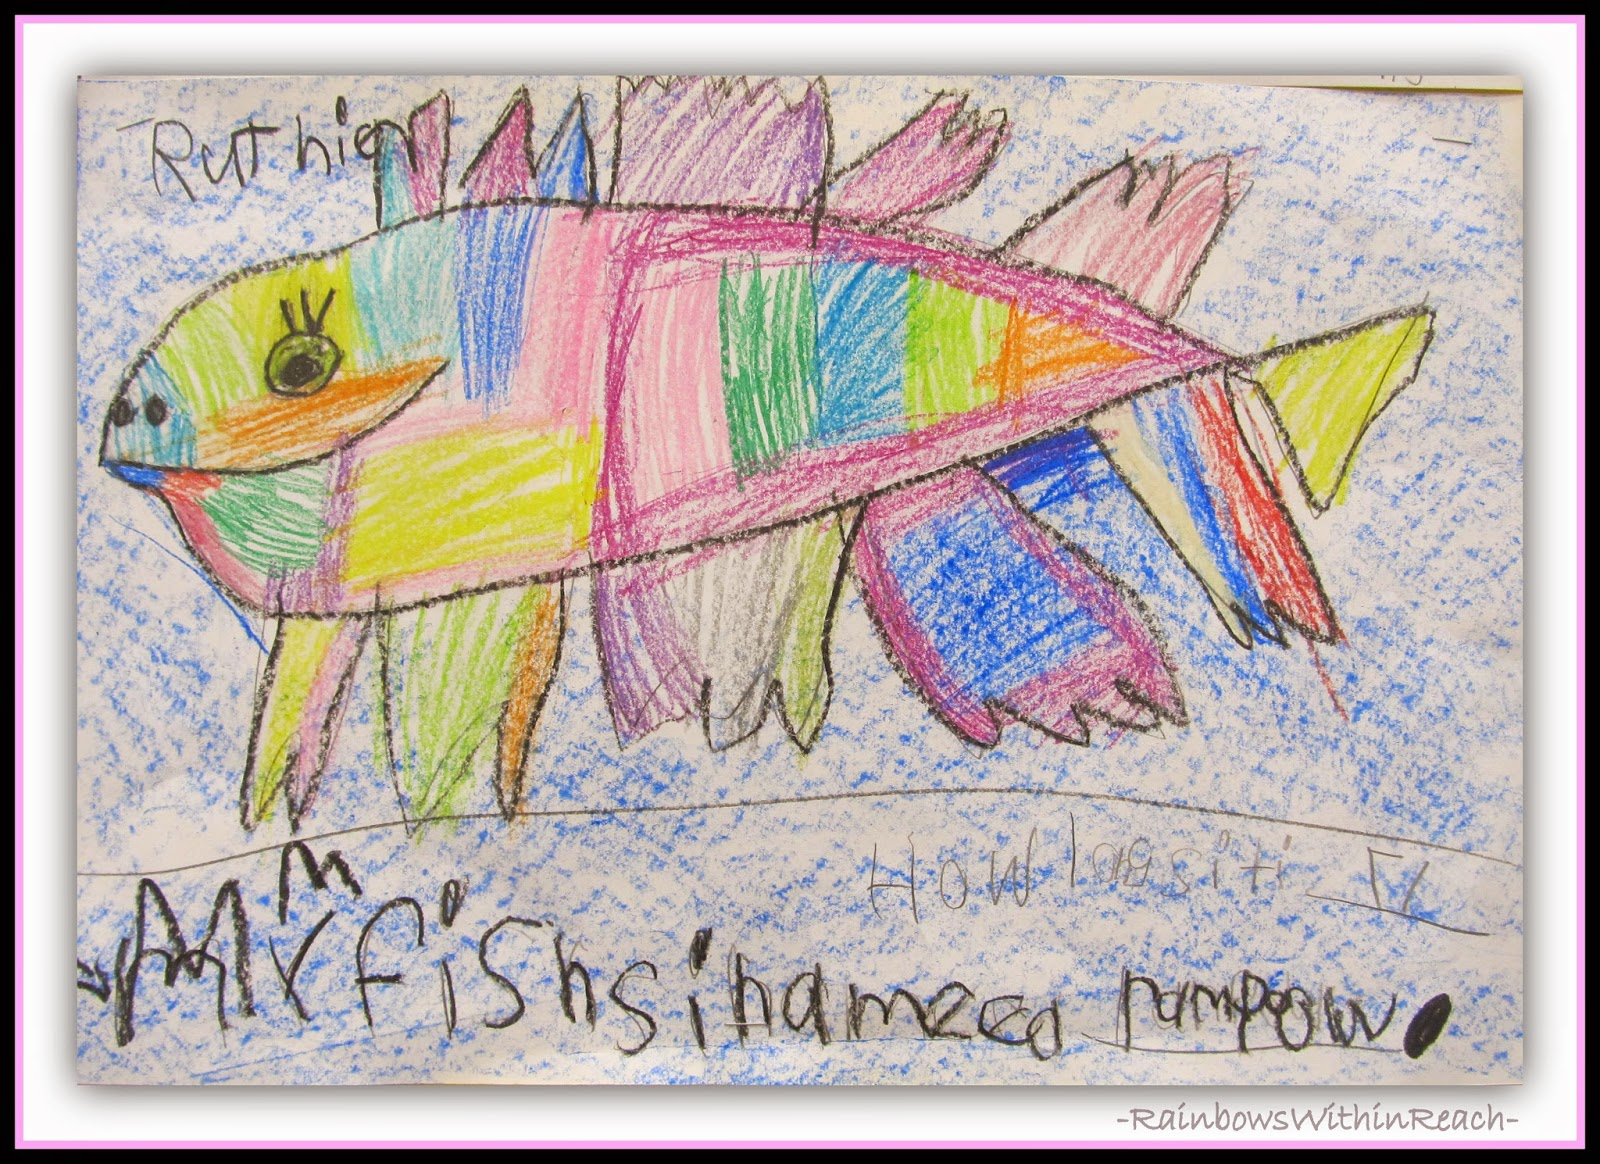 Student Ocean Fish Drawings {Ocean RoundUP of Inspiration at RainbowsWithinReach}